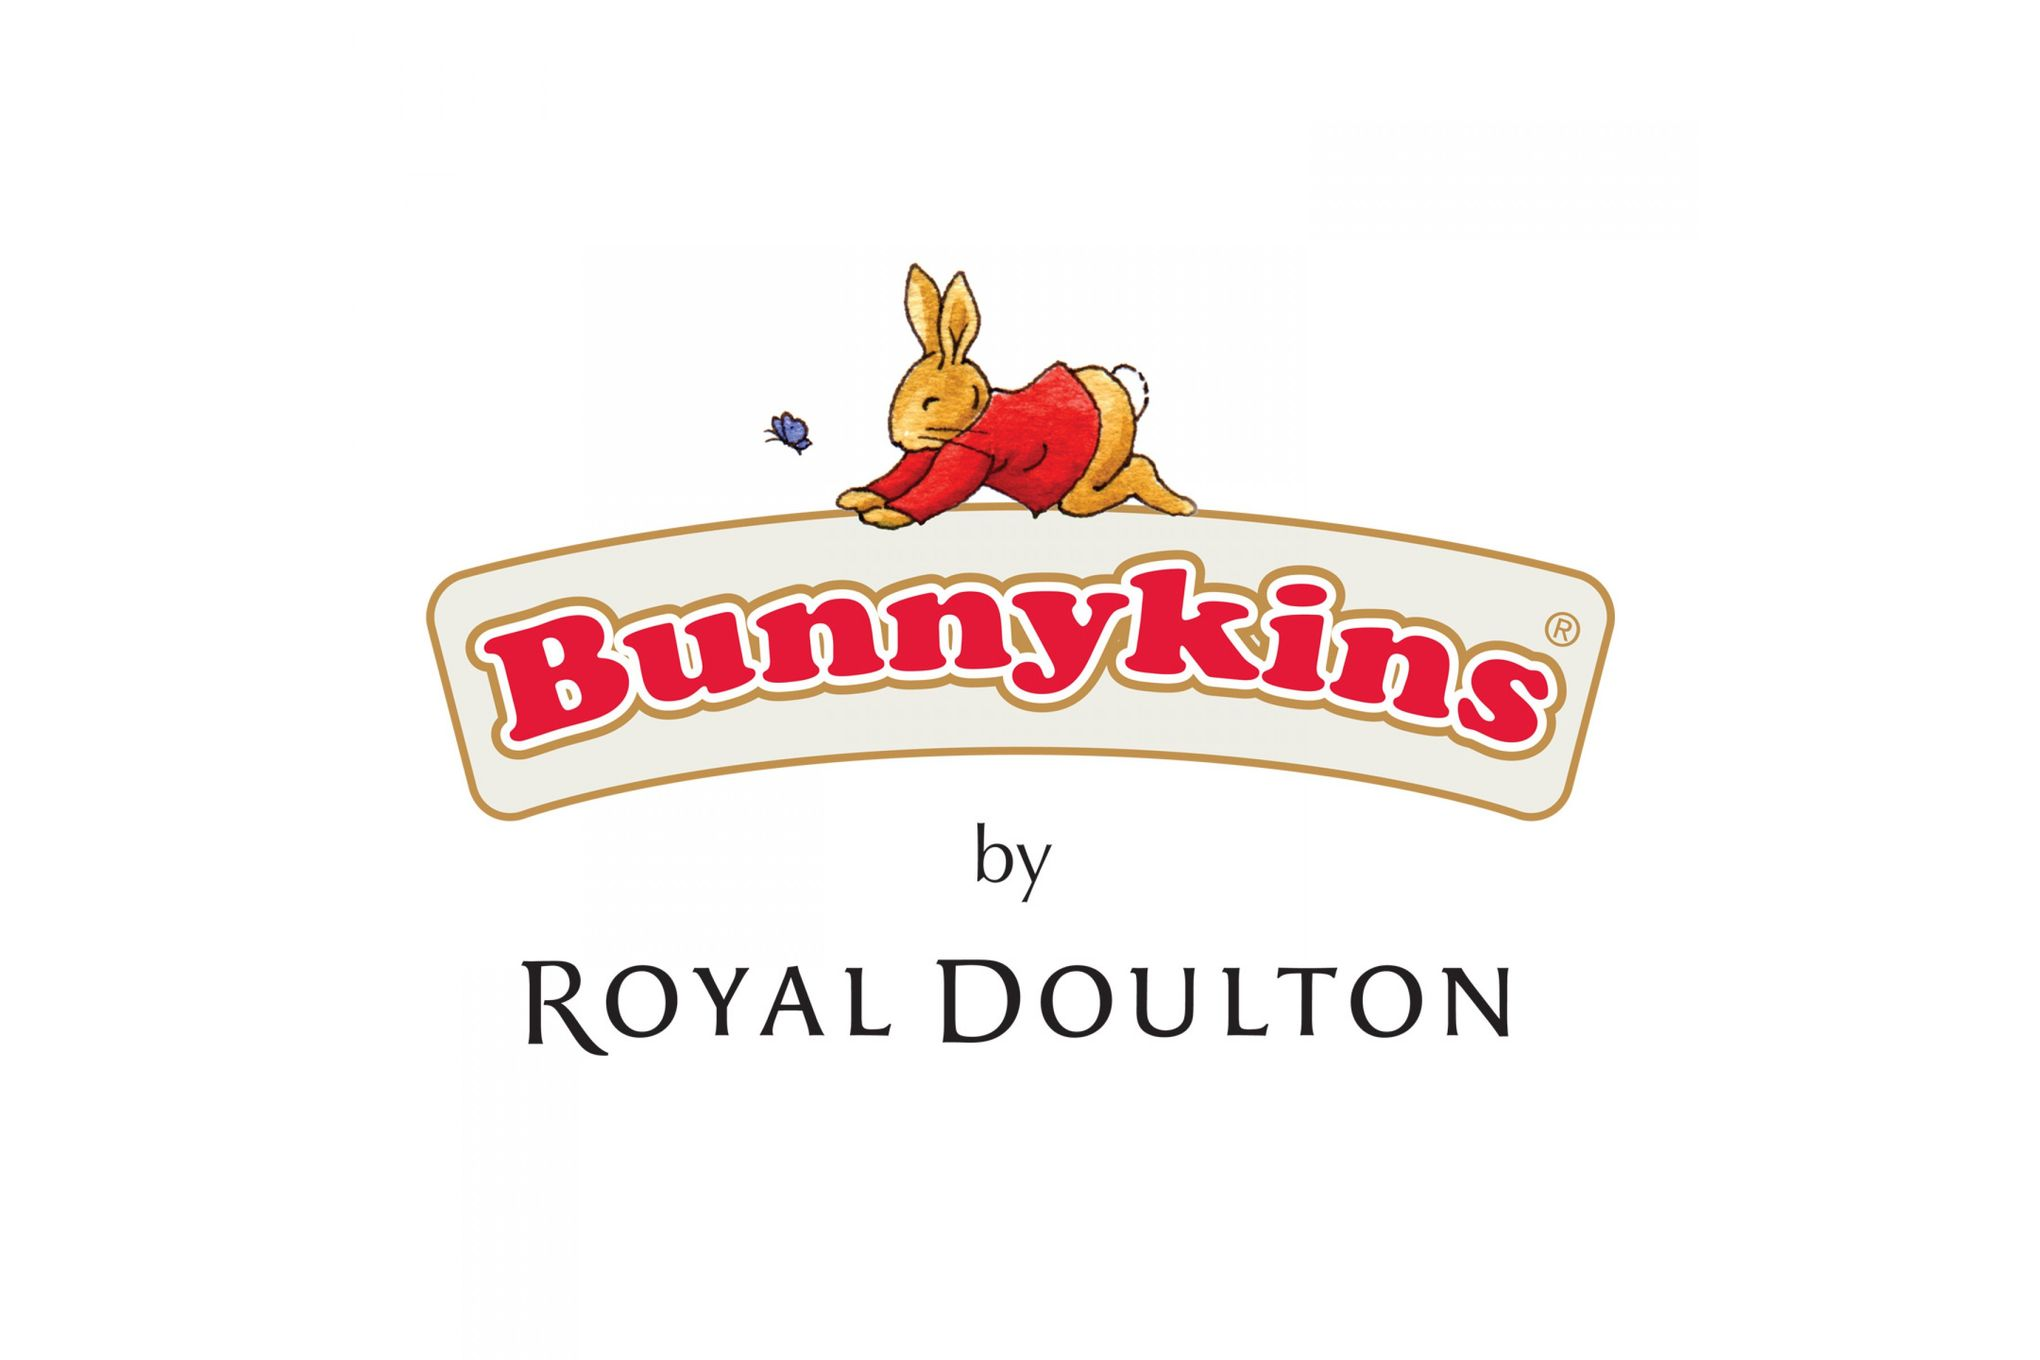 Royal Doulton Bunnykins 2 Piece Set Baby Plate, 2 Handled Mug thumb 2